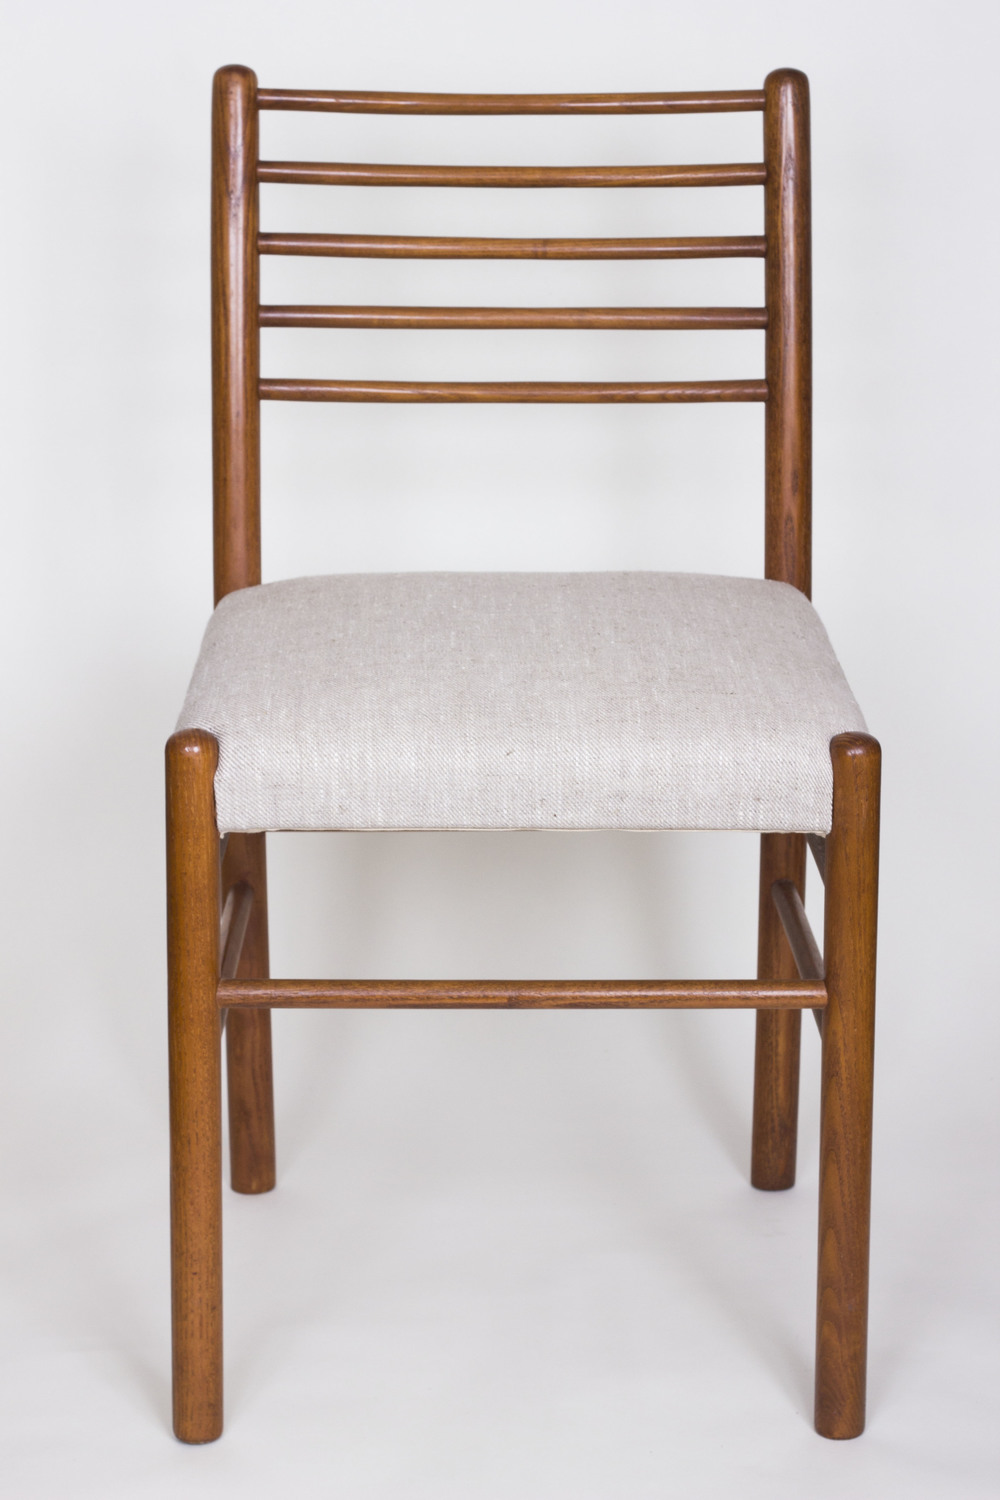 Teak upholstered chair circa 1960, part of set of 6.  £275